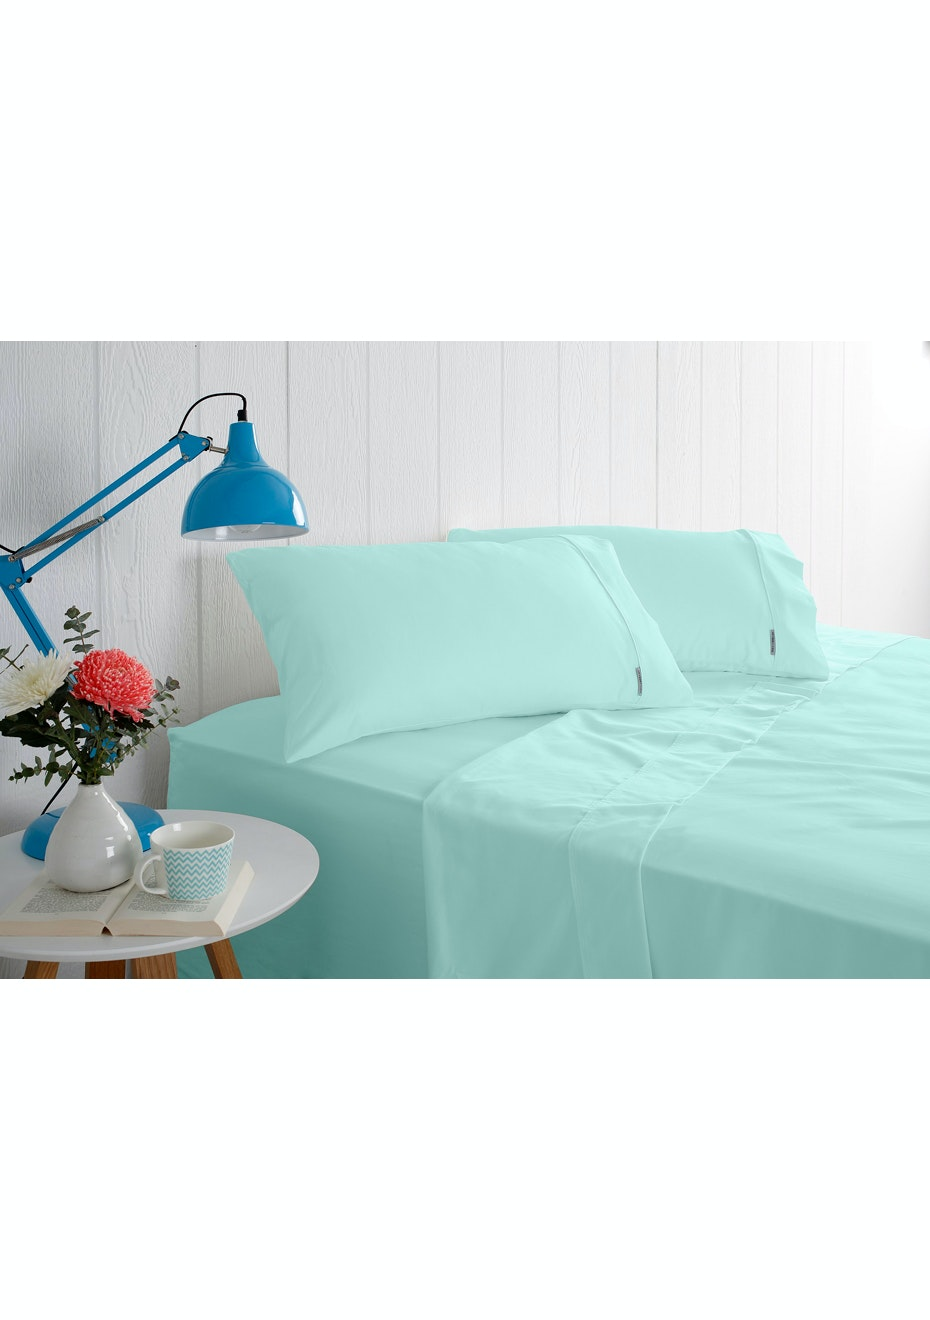 Odyssey Living 1000 Thread Count – Cotton Rich Sheet Sets - Mint - Queen Bed